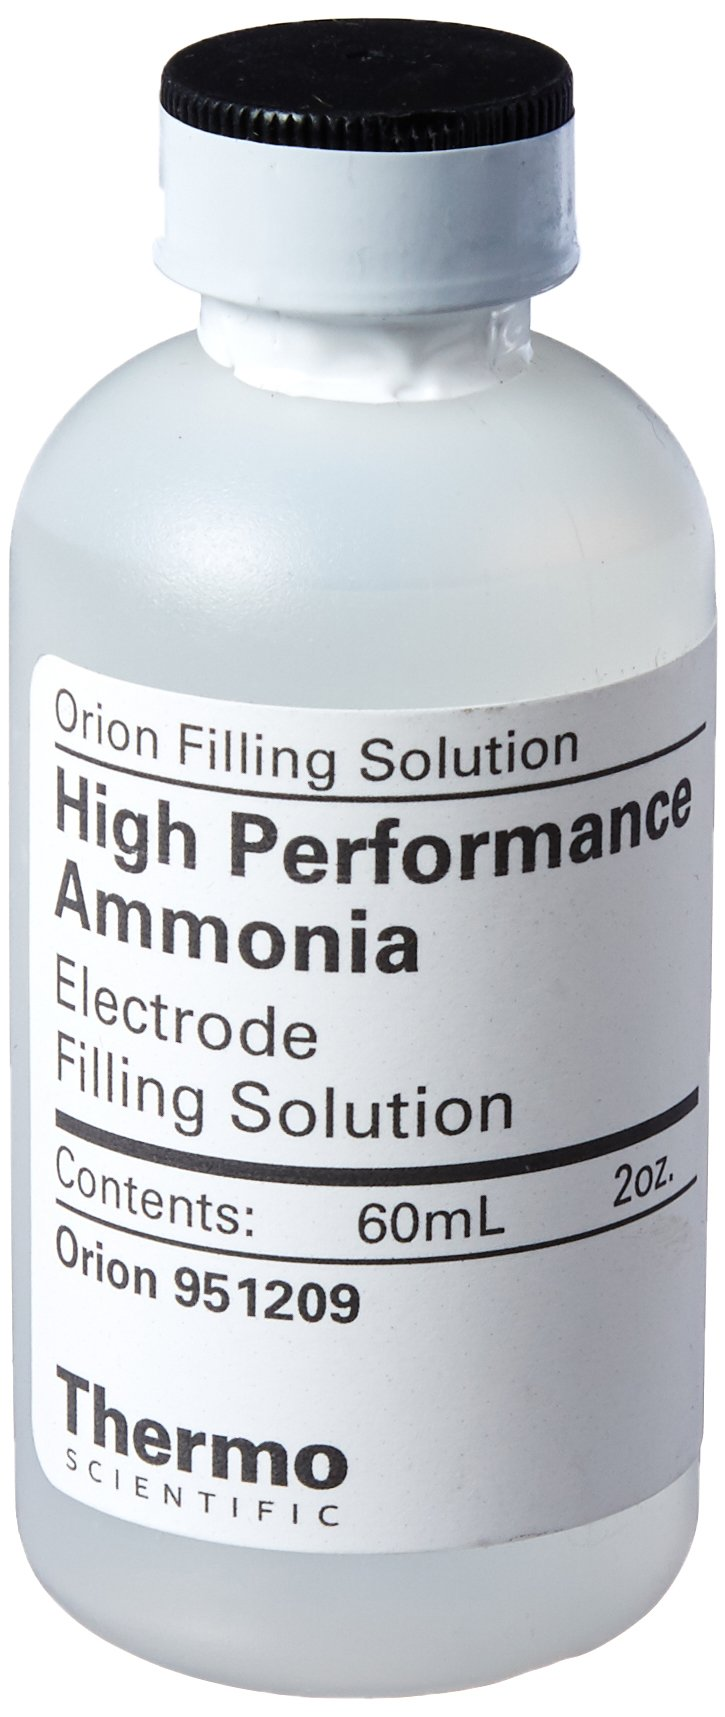 Thermo Scientific Orion 951209 Fill Solution for Ammonia High Performance Ion Selective Electrode, 60ml Volume by Thermo Scientific Orion (Image #1)